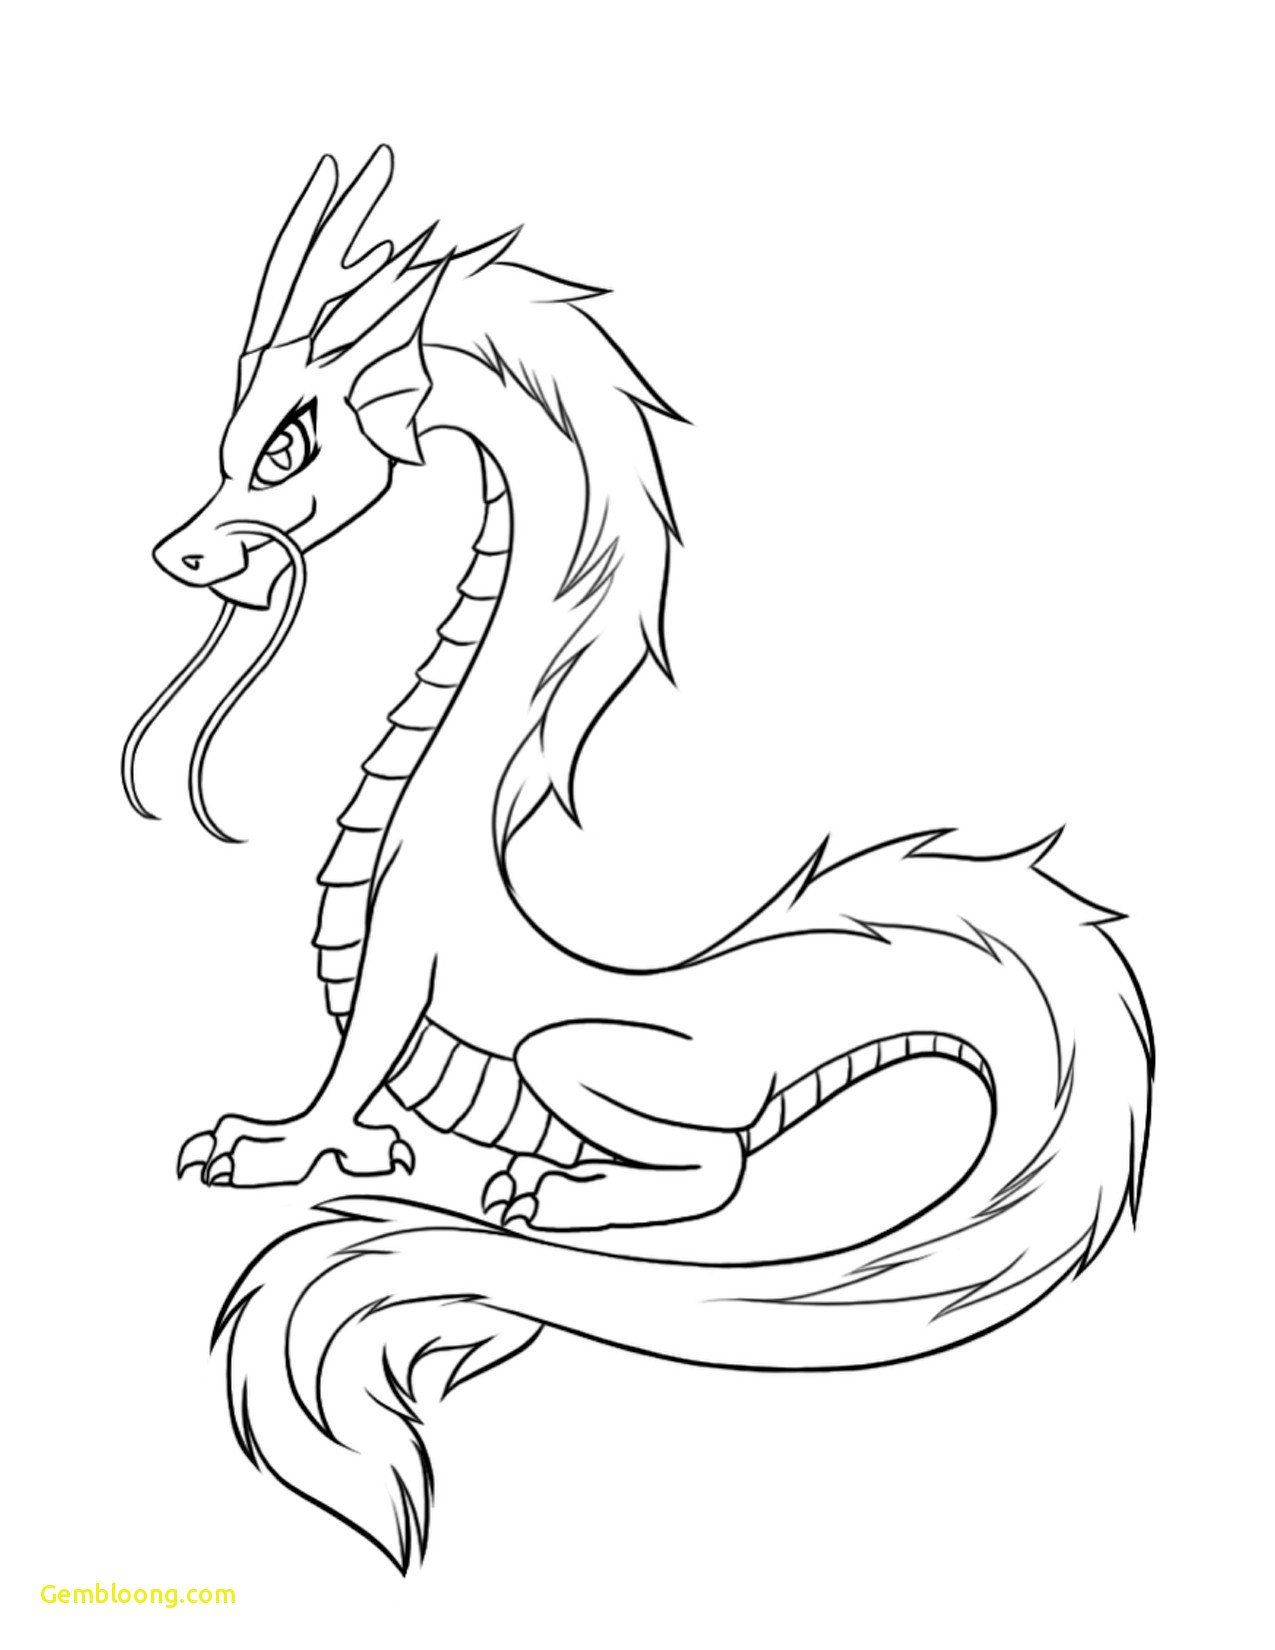 Cute Baby Dragon Coloring Pages Cute Baby Dragon Real Tags Cute Dragon Coloring Pages In 2020 Easy Dragon Drawings Dragon Coloring Page Dragon Drawing